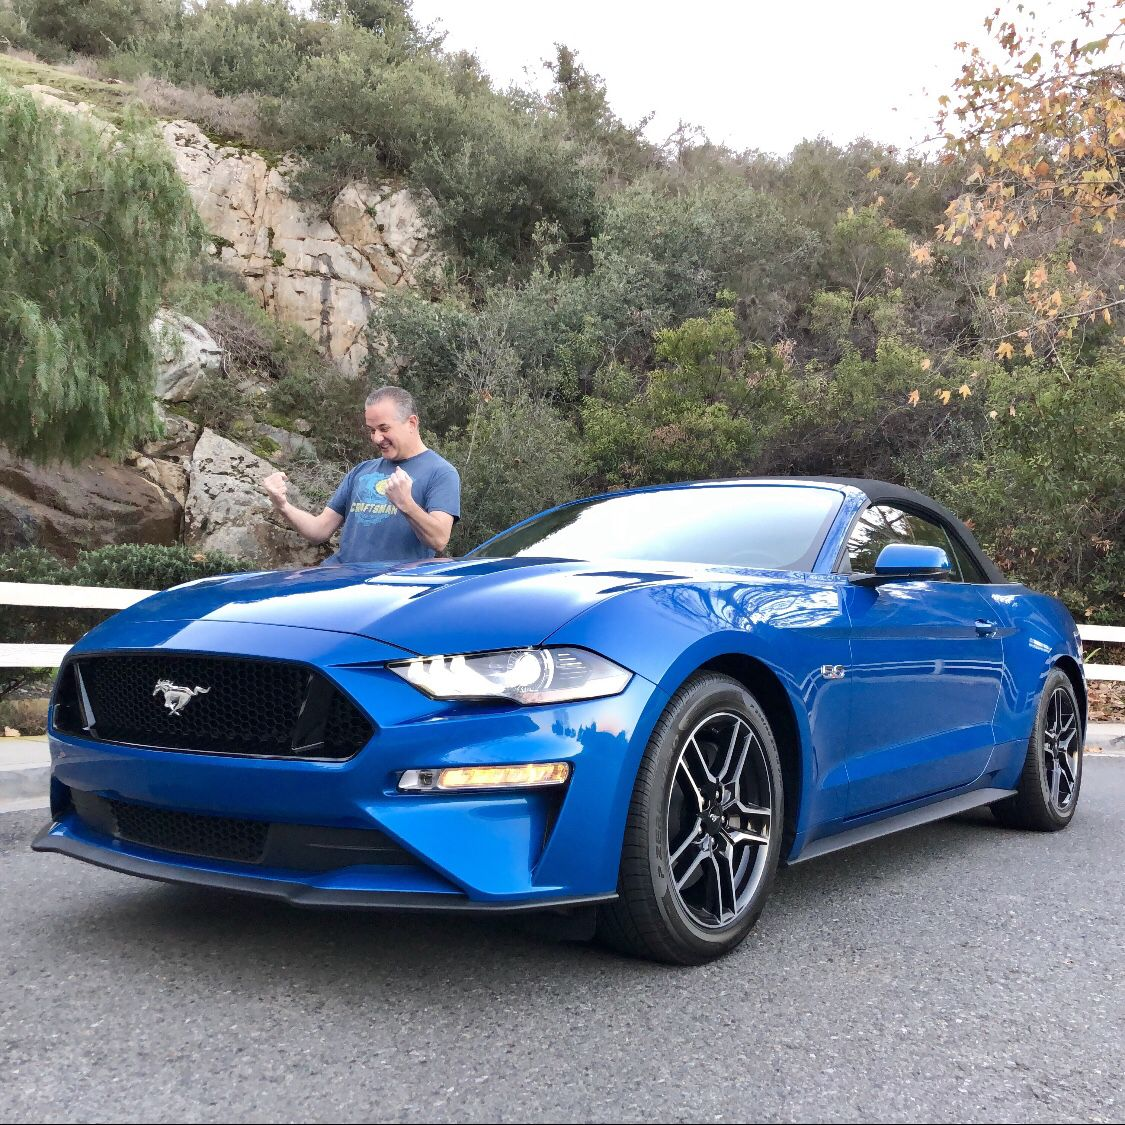 Double Fist Pump For My Ride Of The Week A 2019 Ford